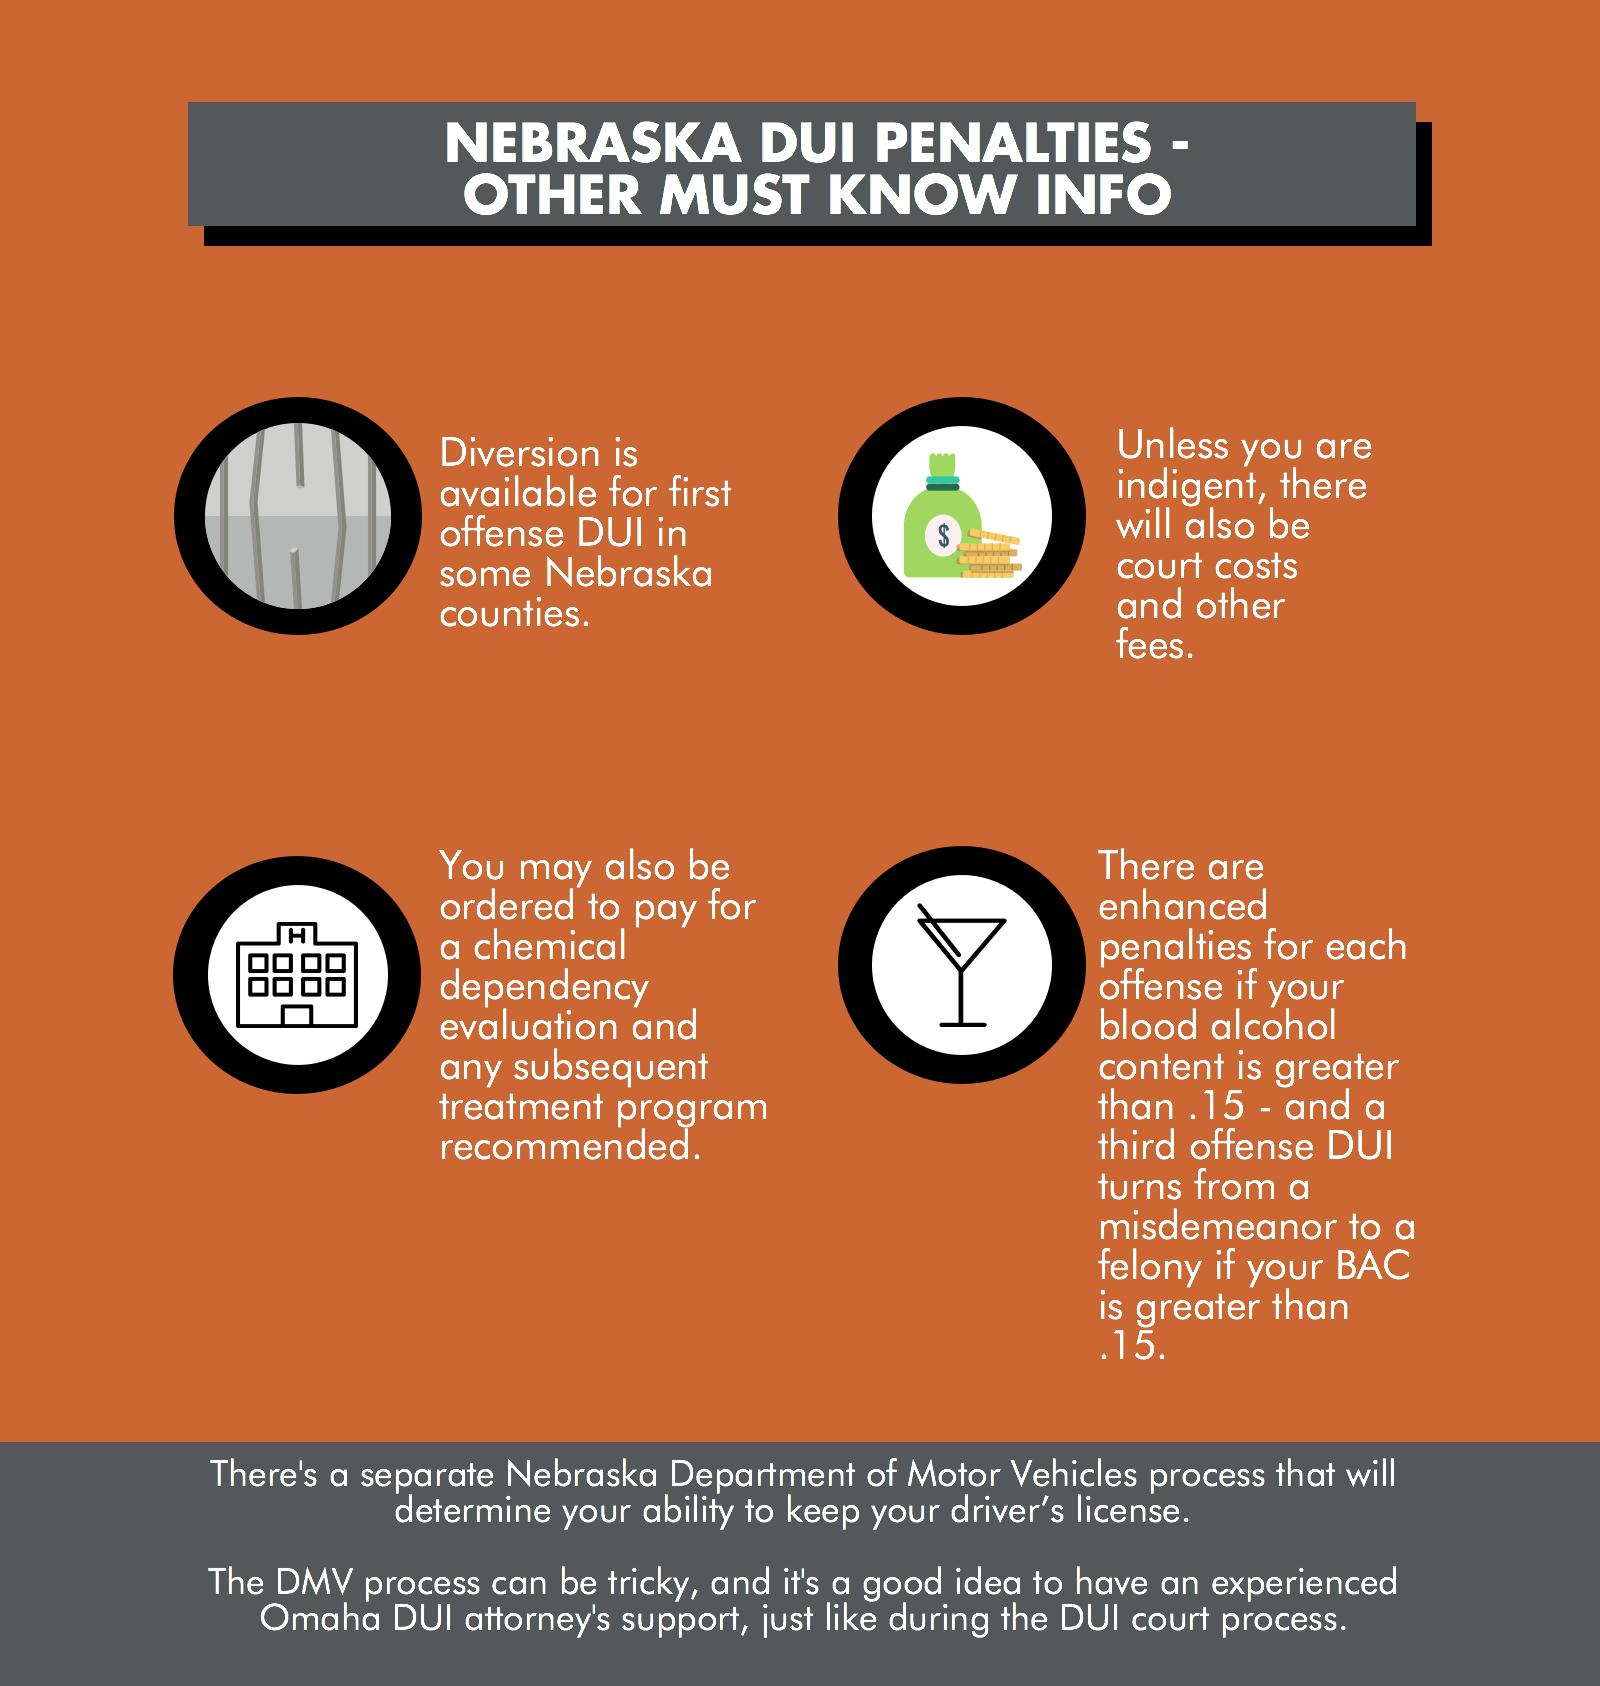 nebraska-dui-penalty-infographic-hightower-reff-law_block_3